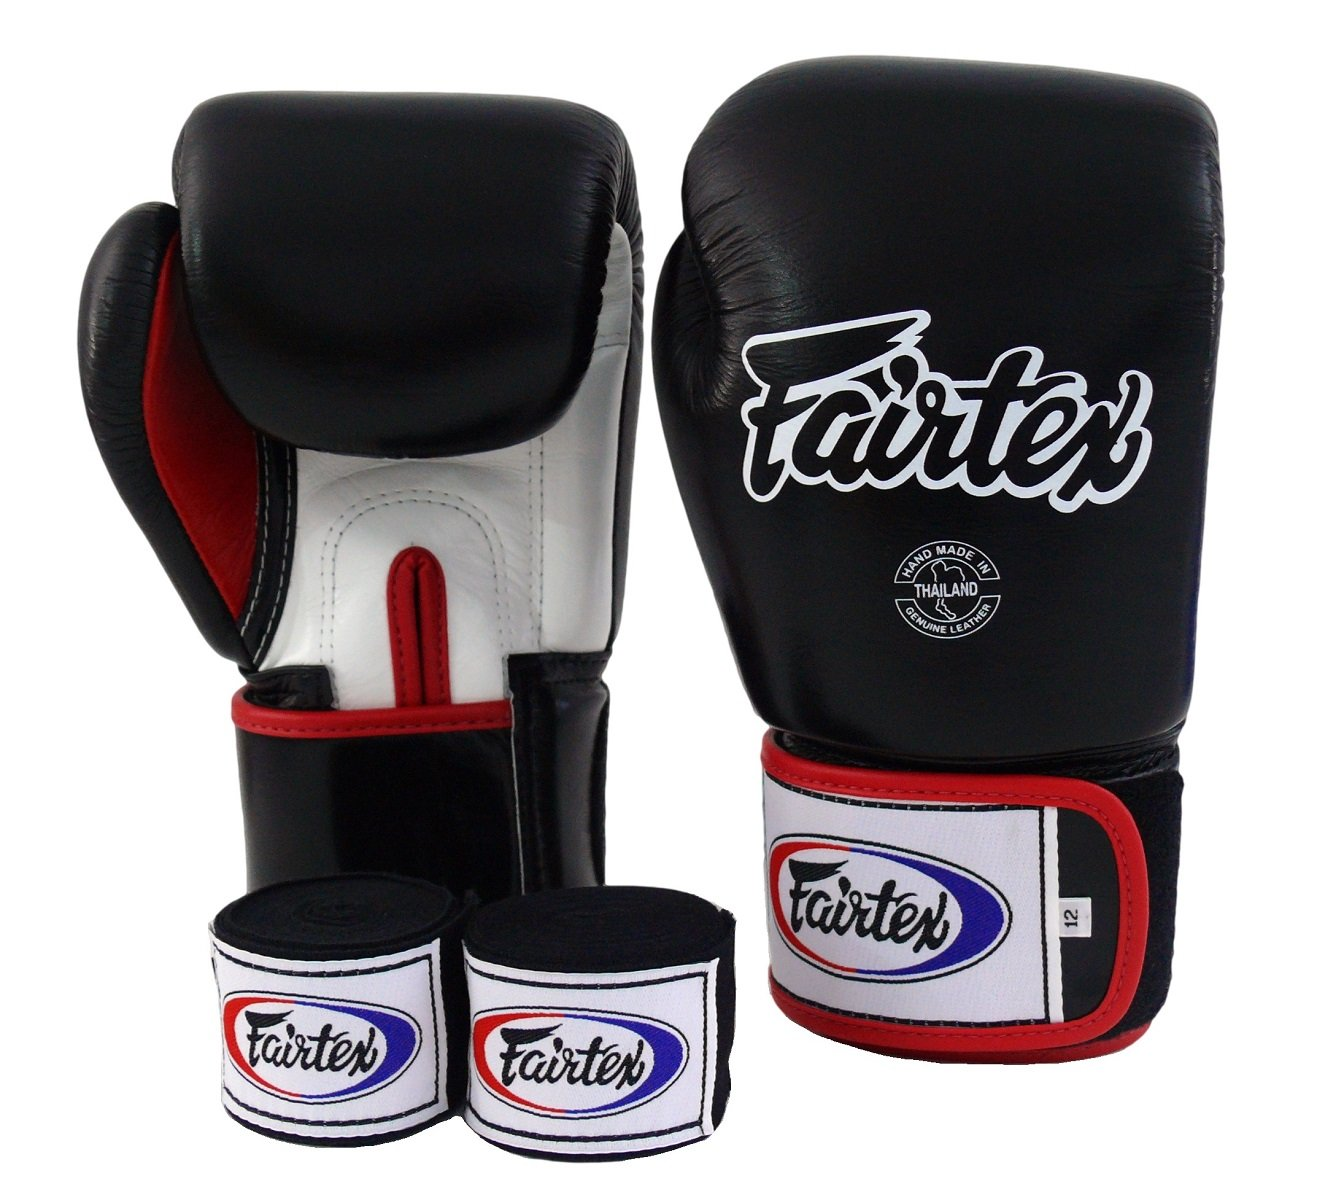 Top 16 Best Boxing Gloves (2019 Reviews & Buying Guide) 11